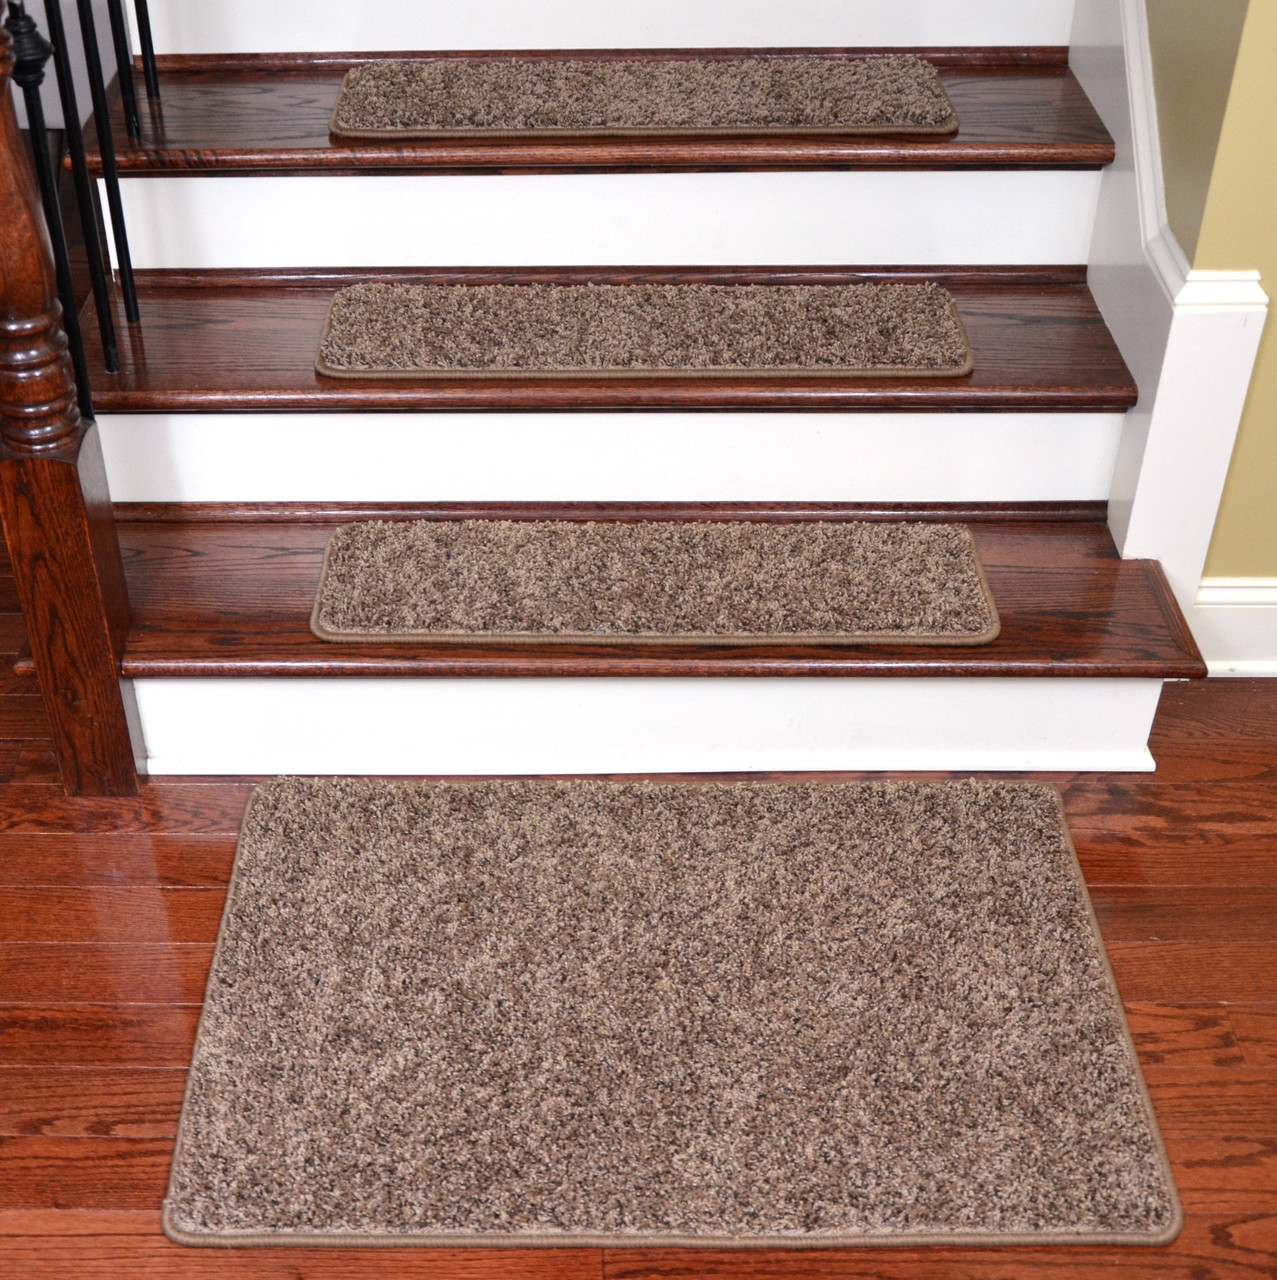 Diy Stair Treads Out Of Flor Tiles: Brown Tape-Free Stair Treads & Landing Mat